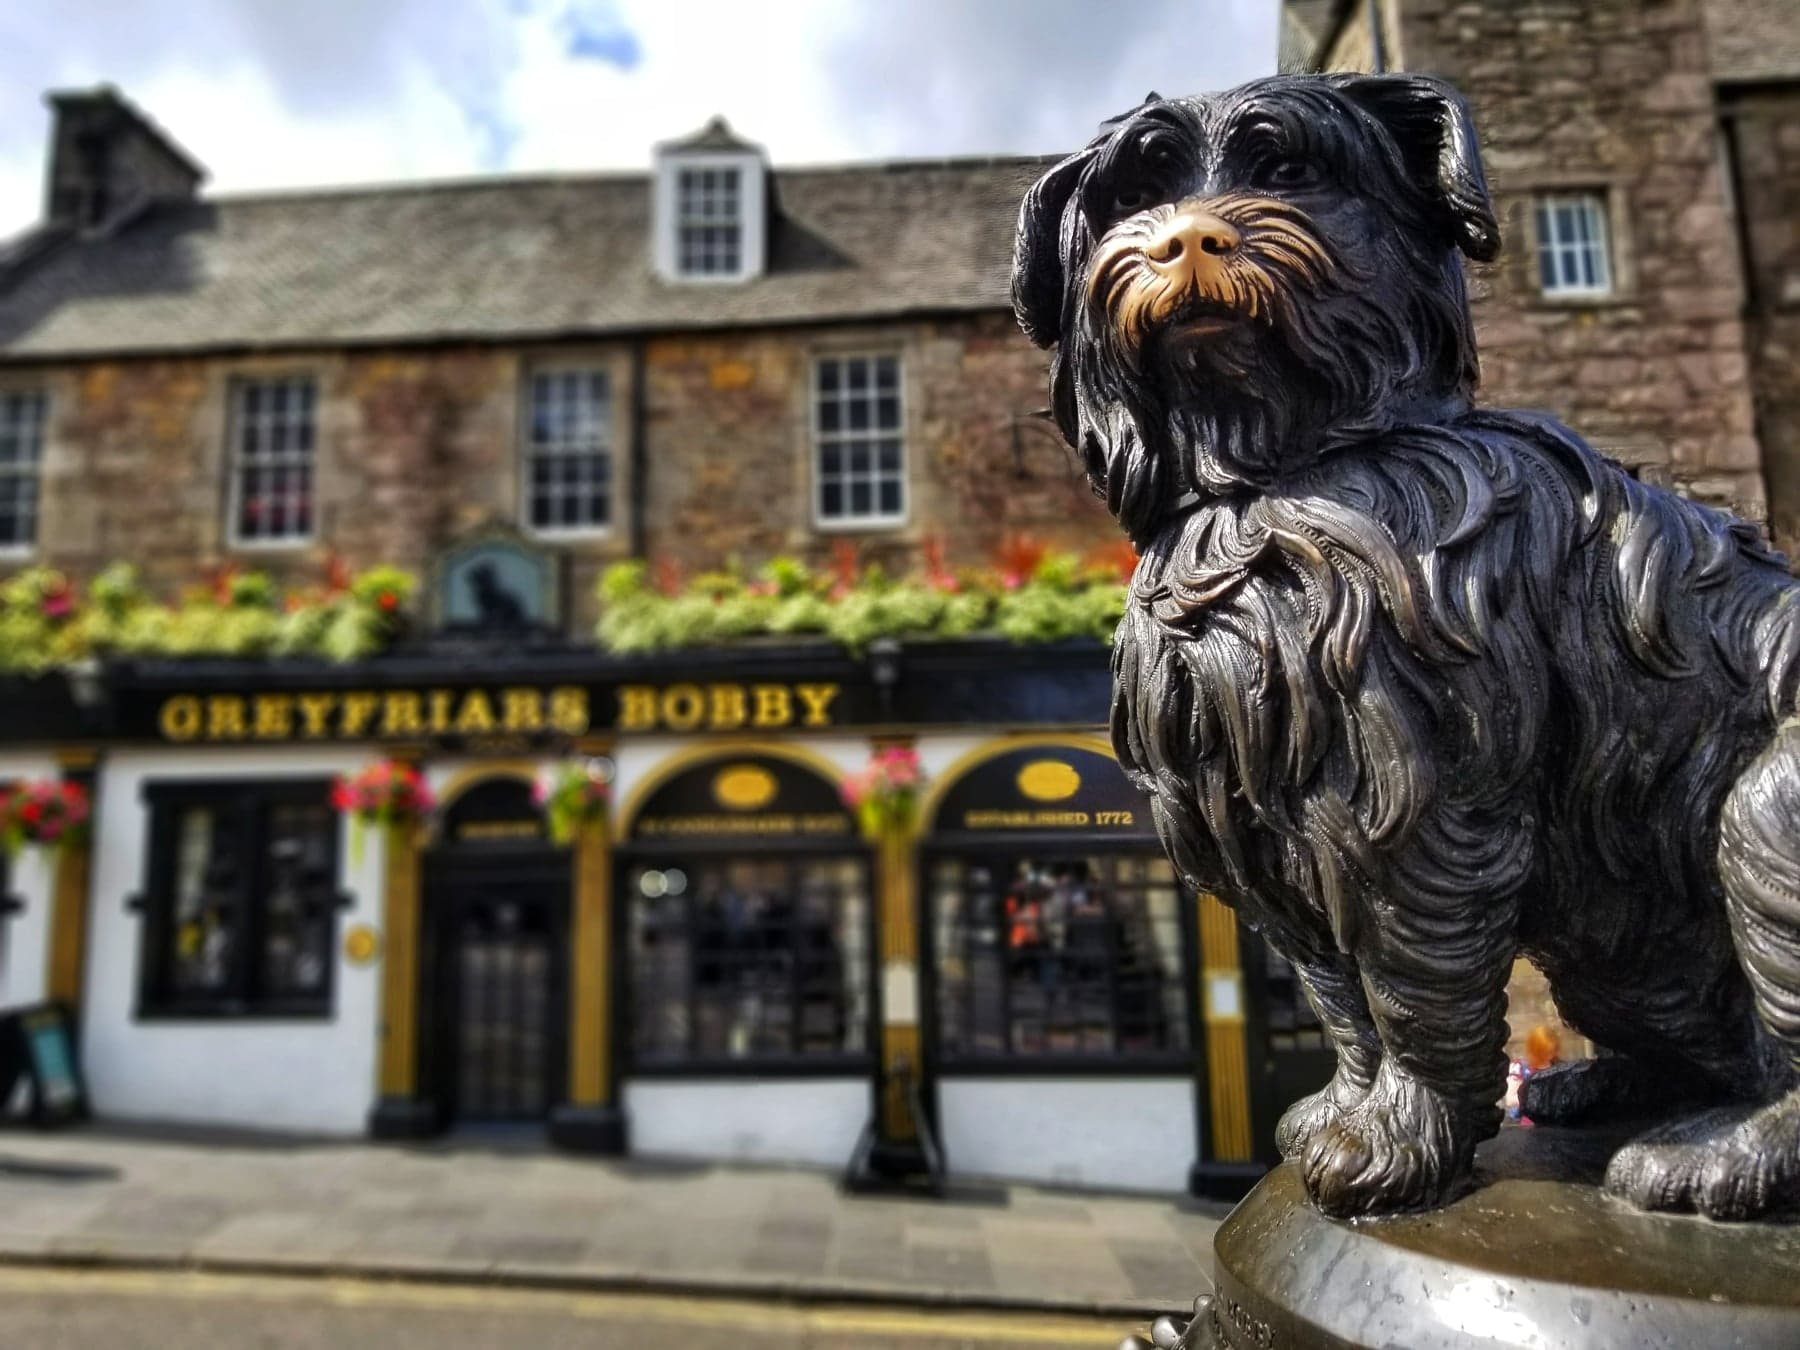 places to visit in Edinburgh - Greyfriars Bobby Statue